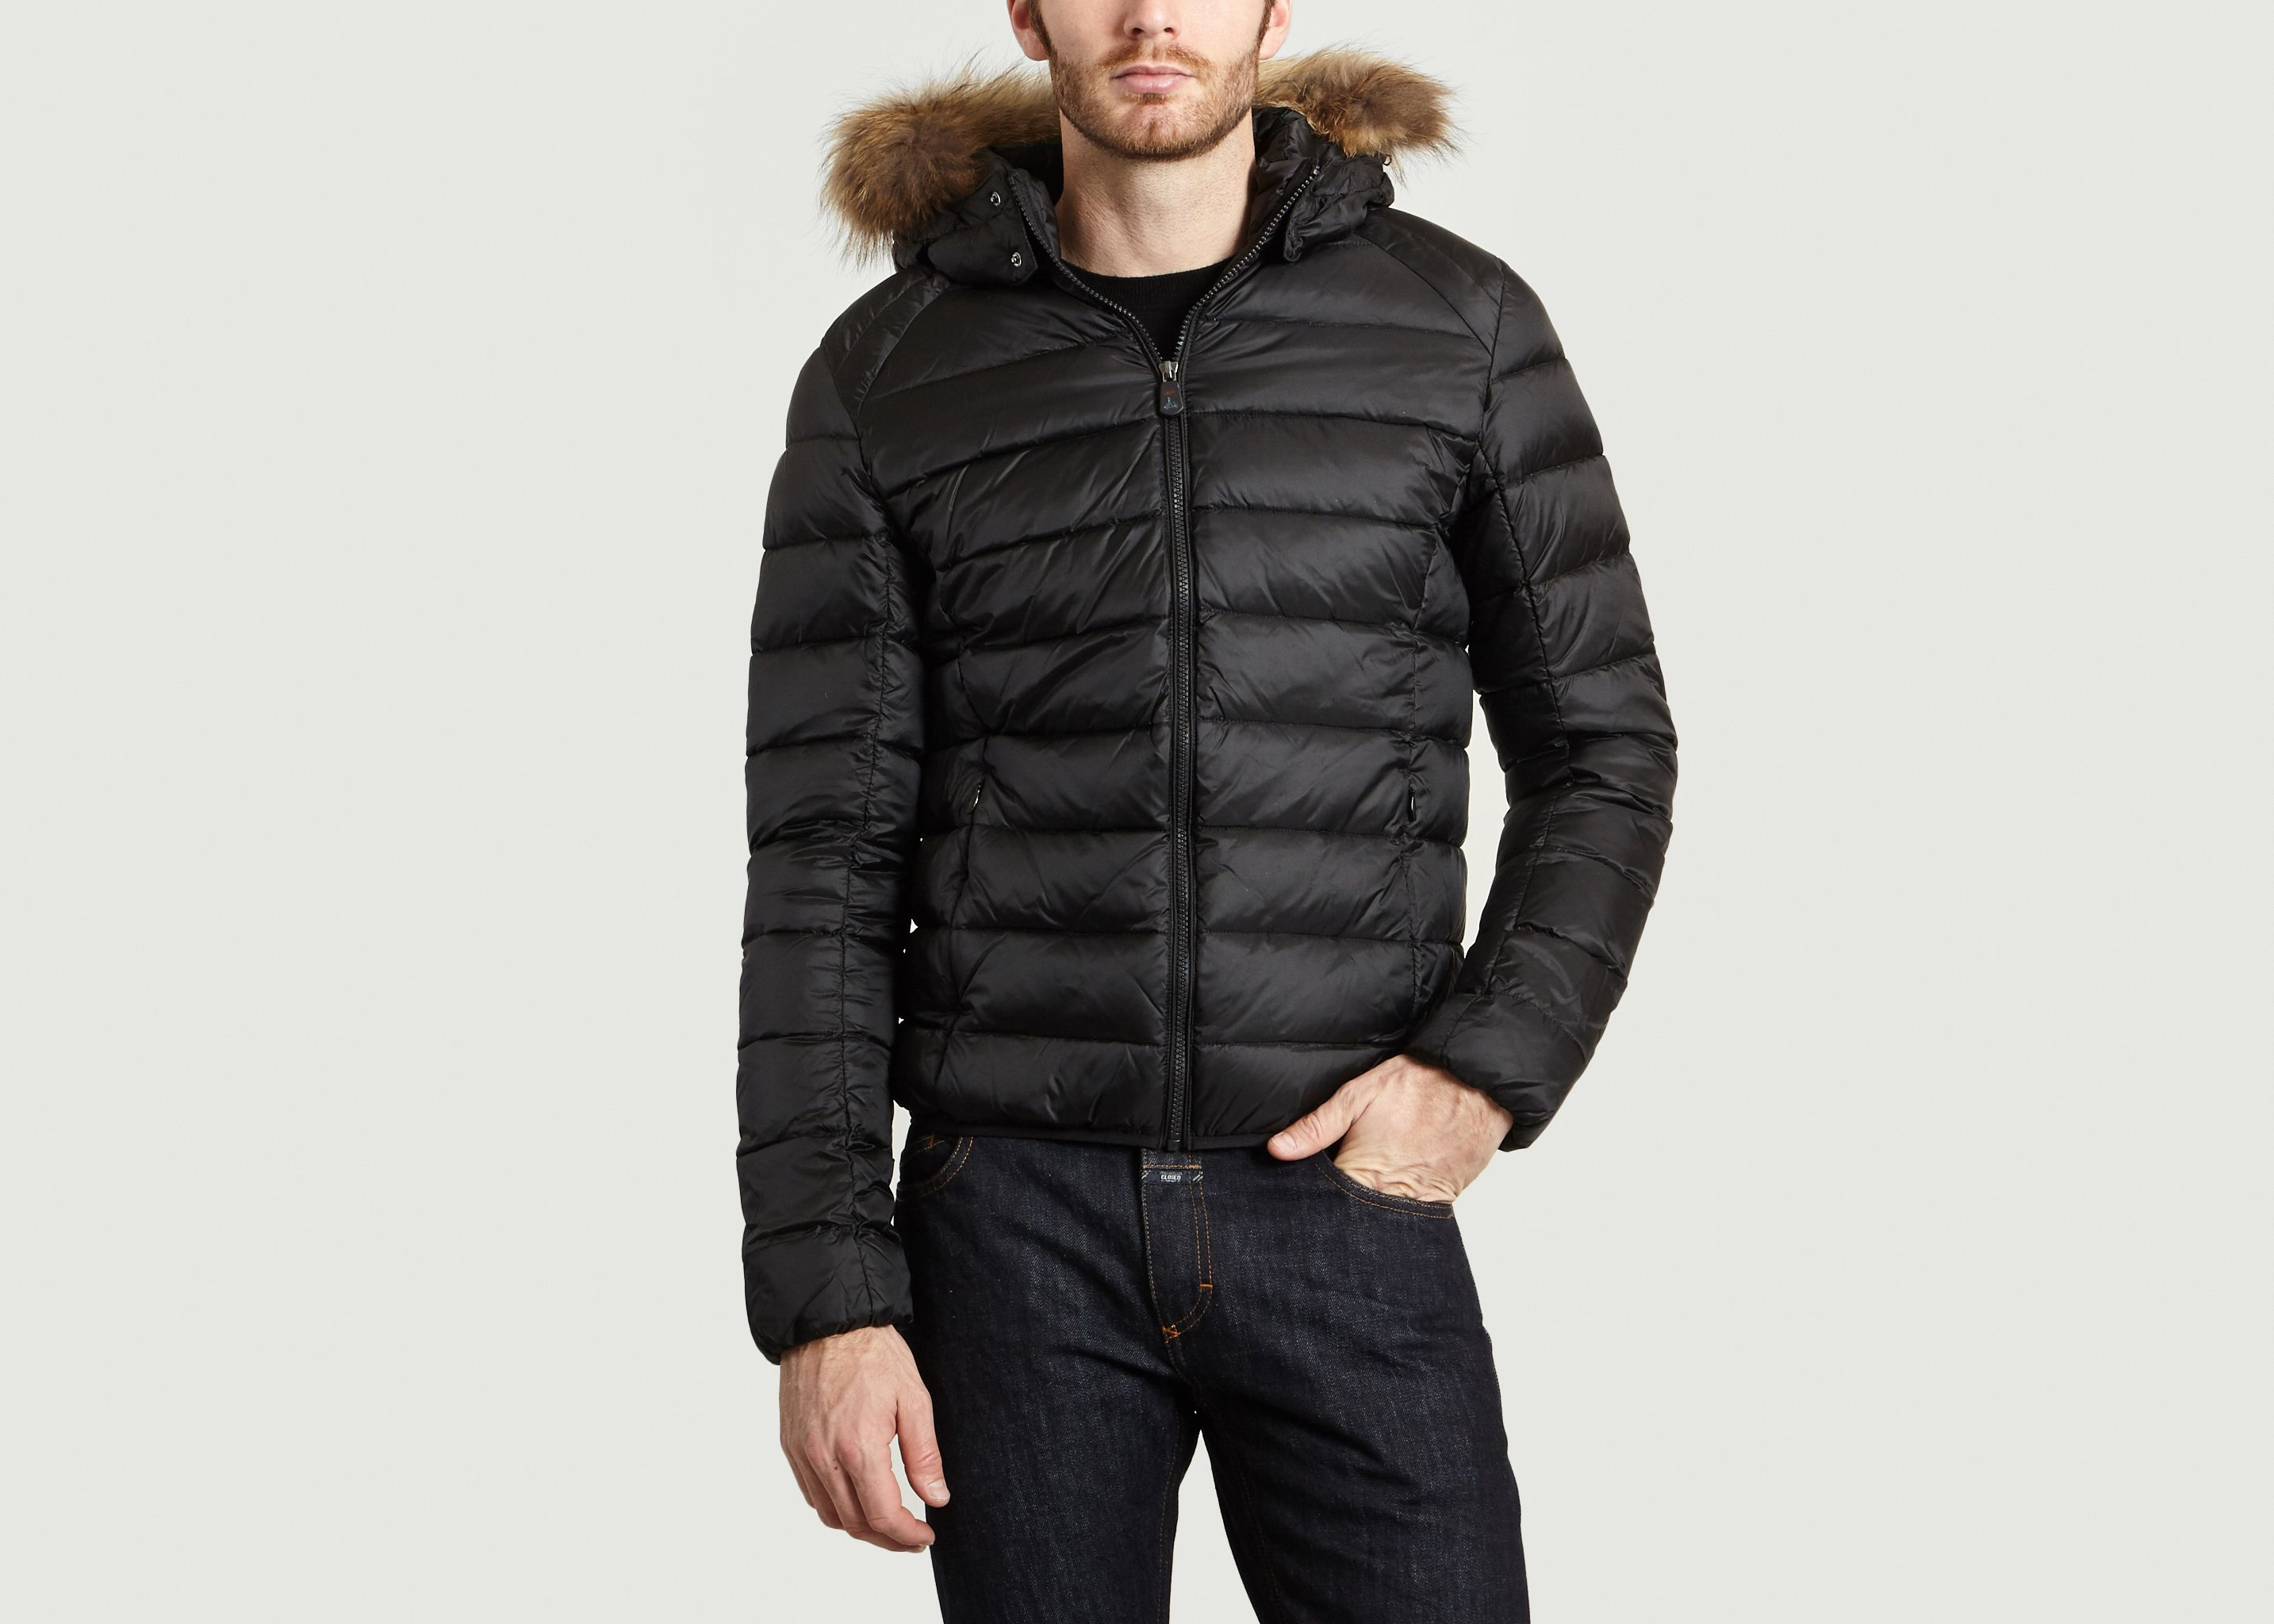 Prestige TopL'exception Grand Noir Doudoune The Over Just Froid ErexCWdQBo